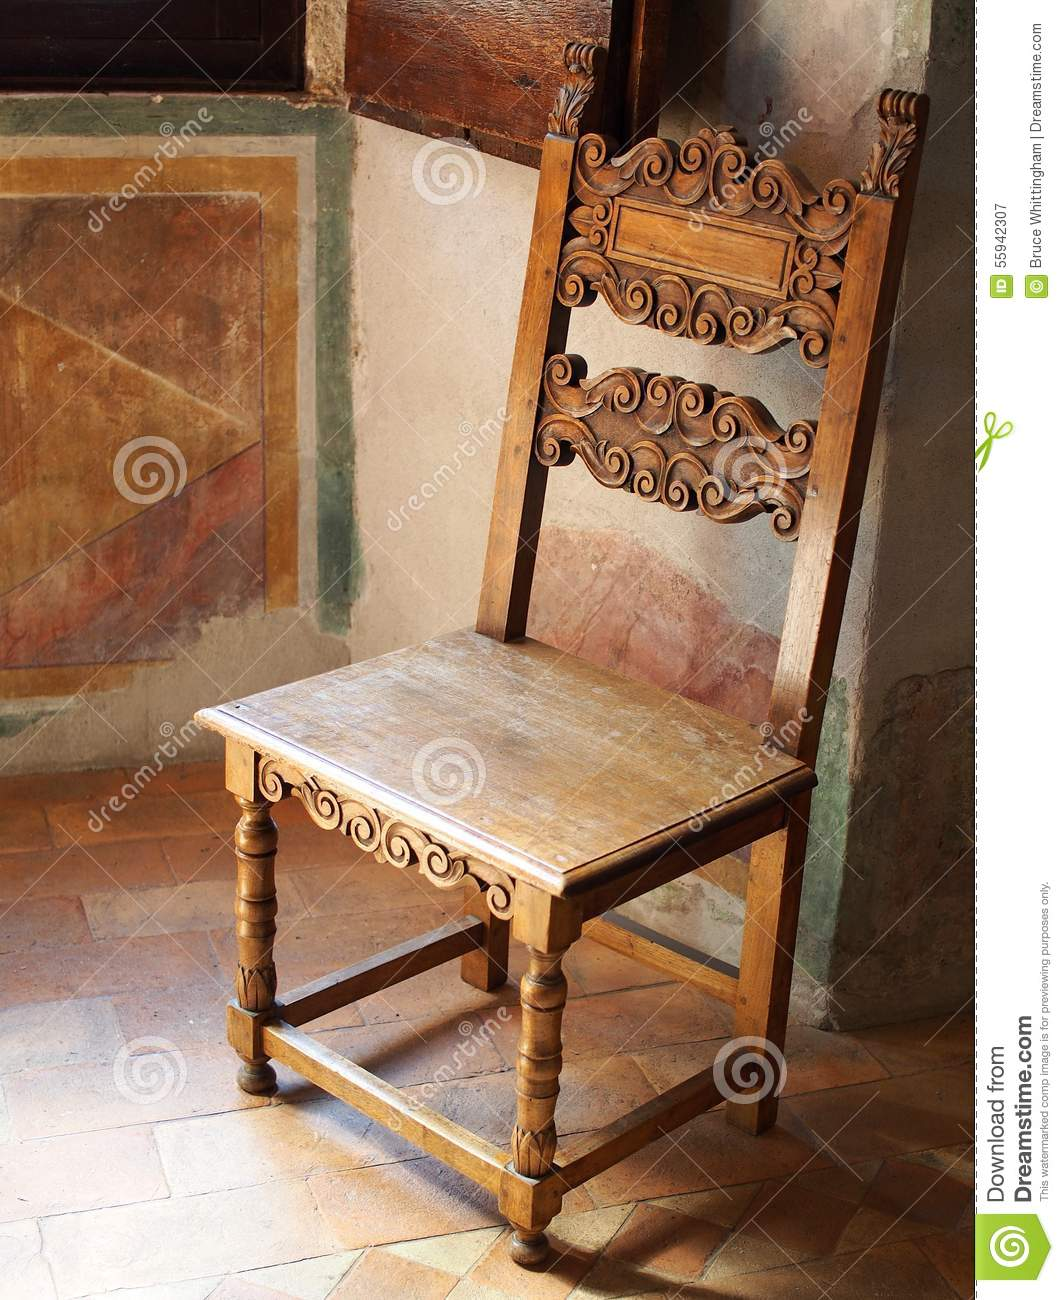 Antique wooden chair roman villa stock photo image for Chaise berceuse